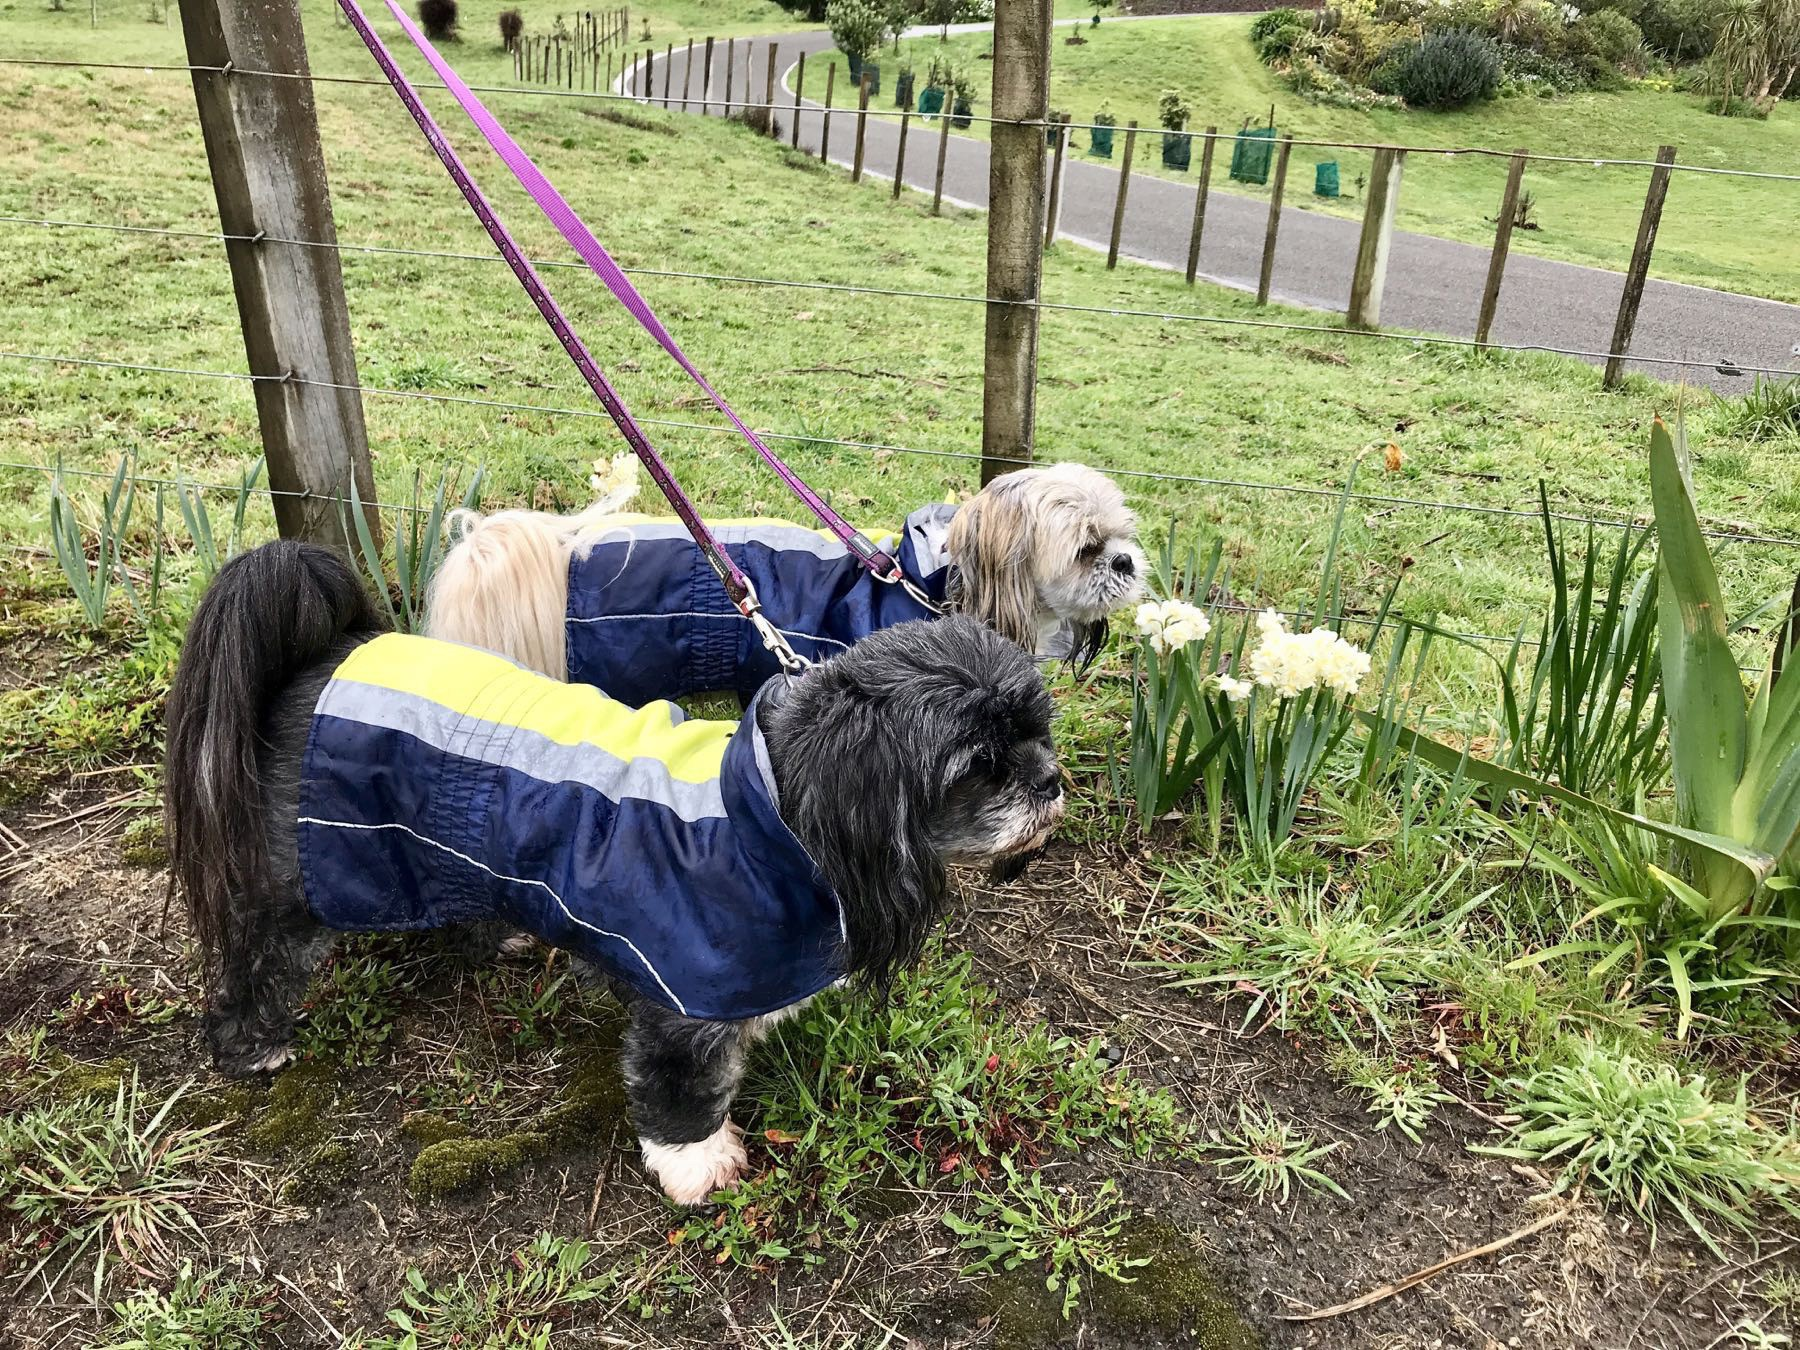 Two small dogs wearing blue and fluorescent yellow raincoats.